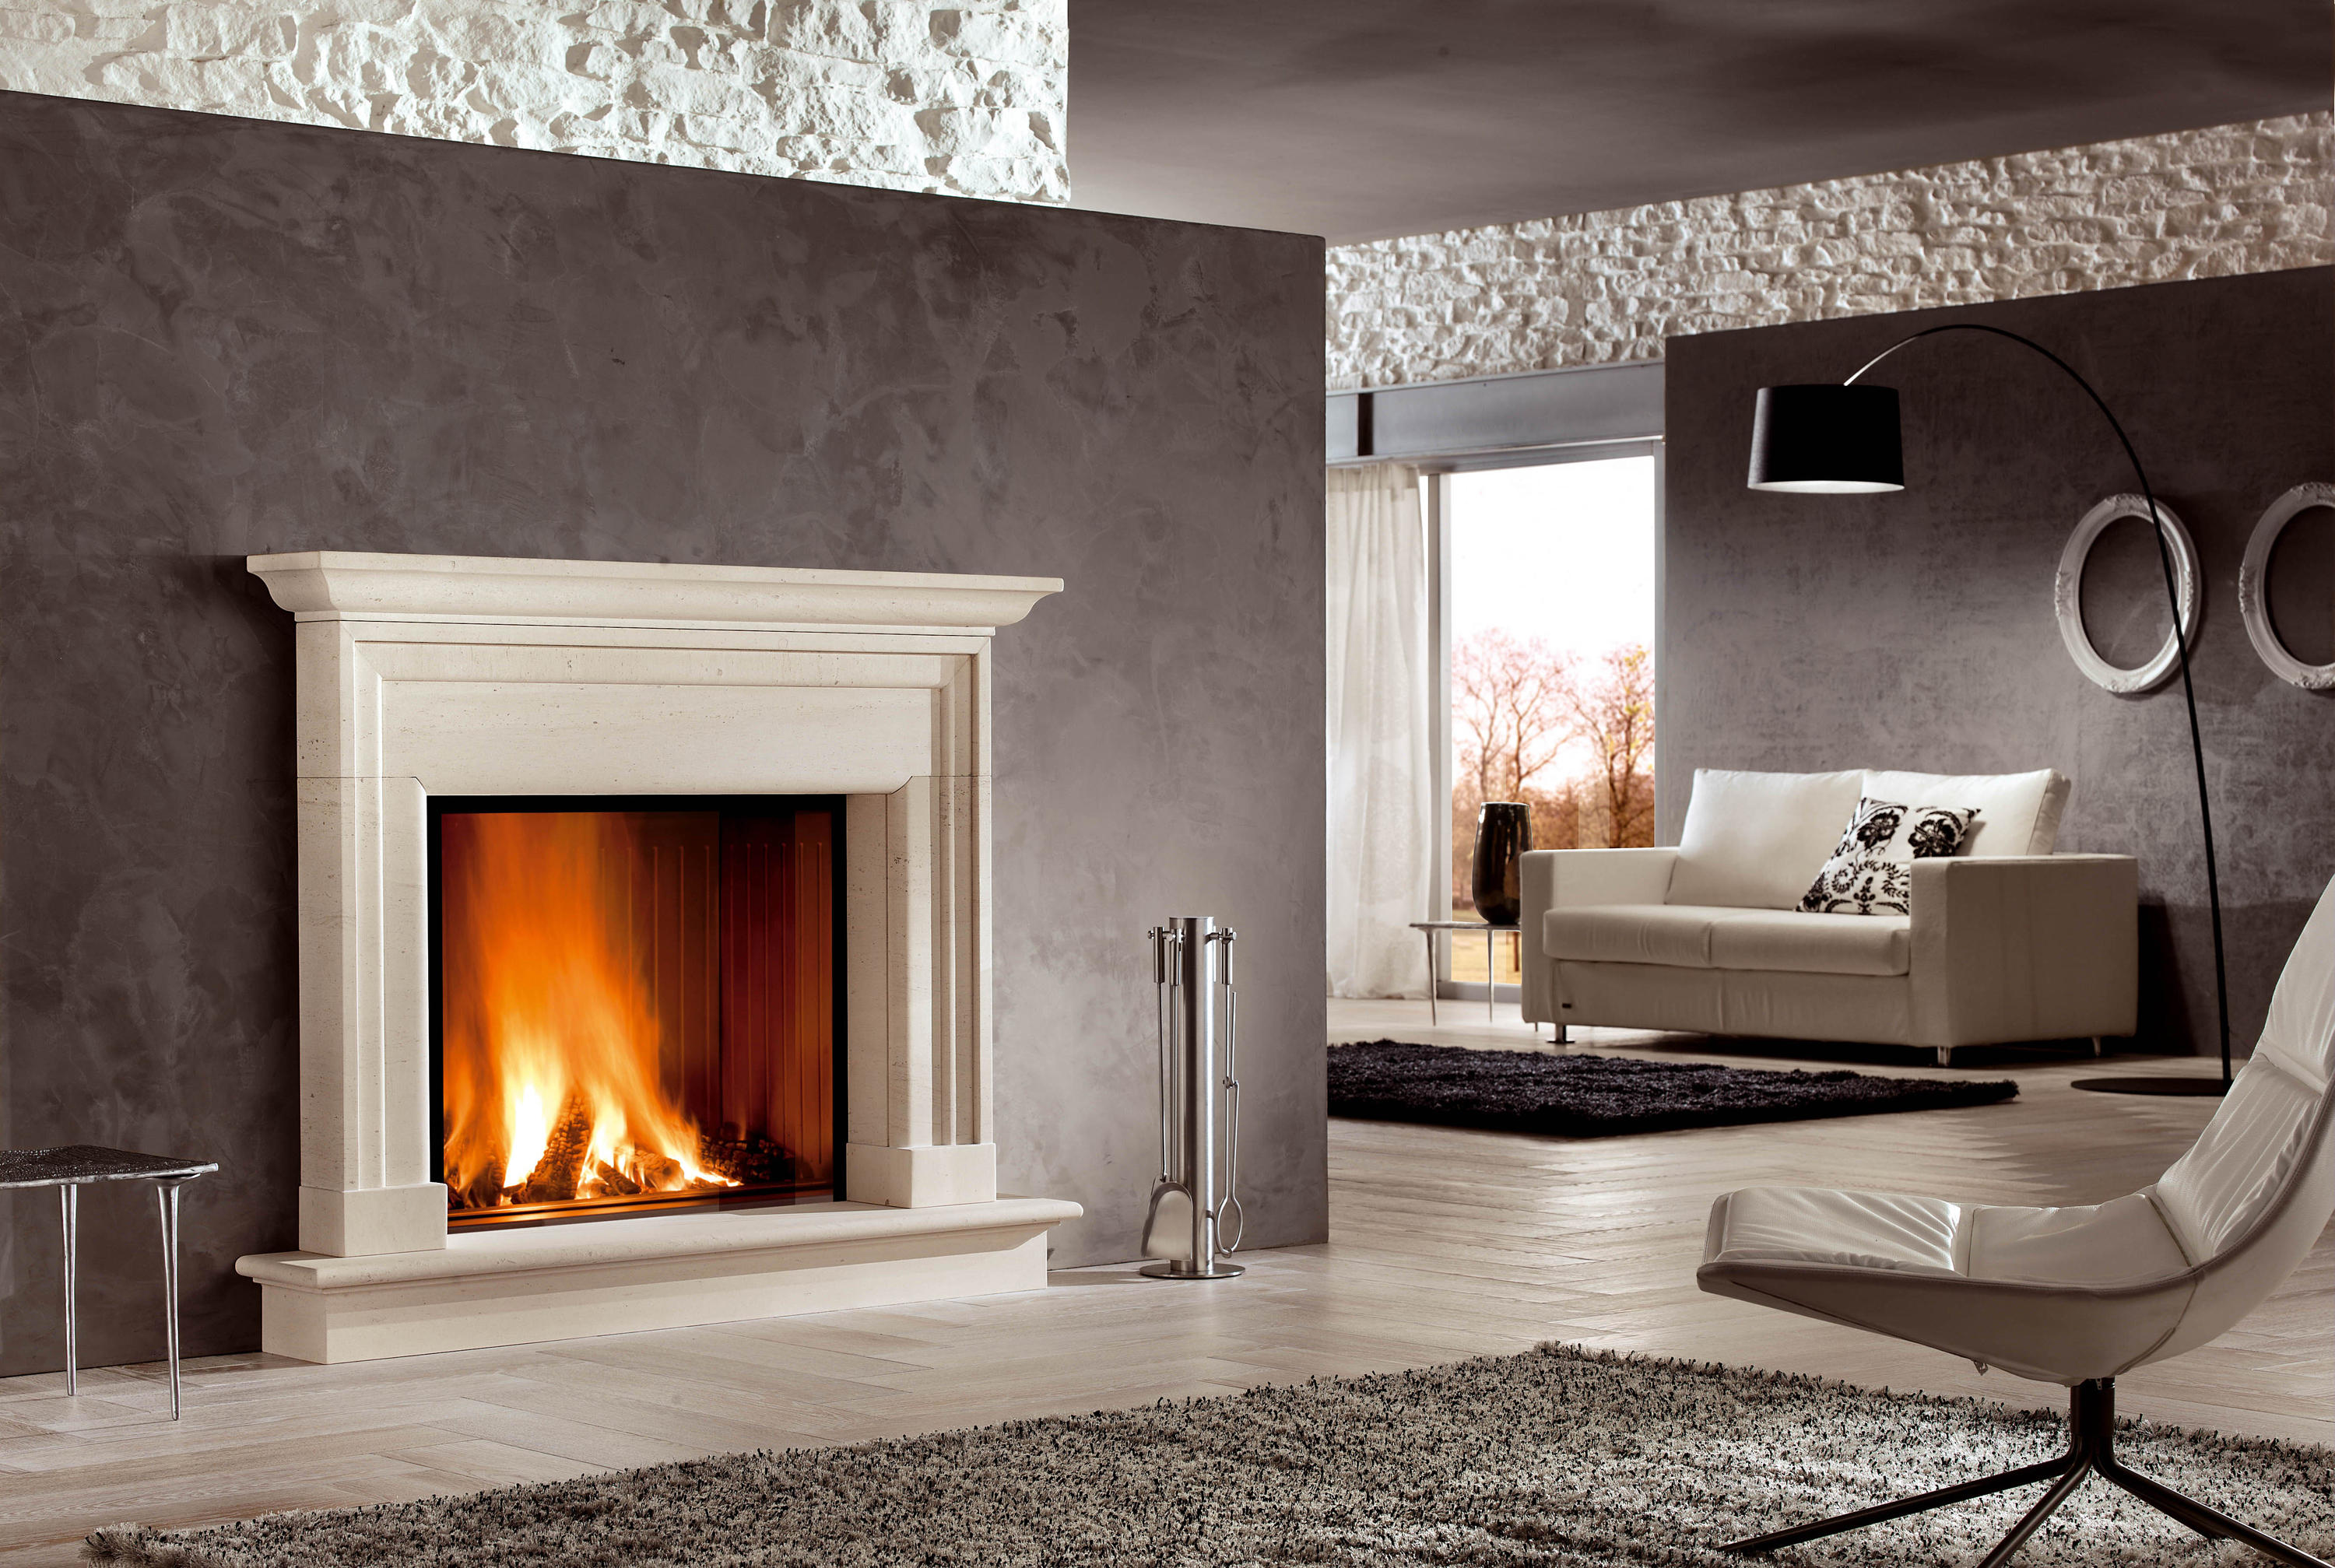 Alghero wood fireplaces from piazzetta architonic for Piazzetta camini